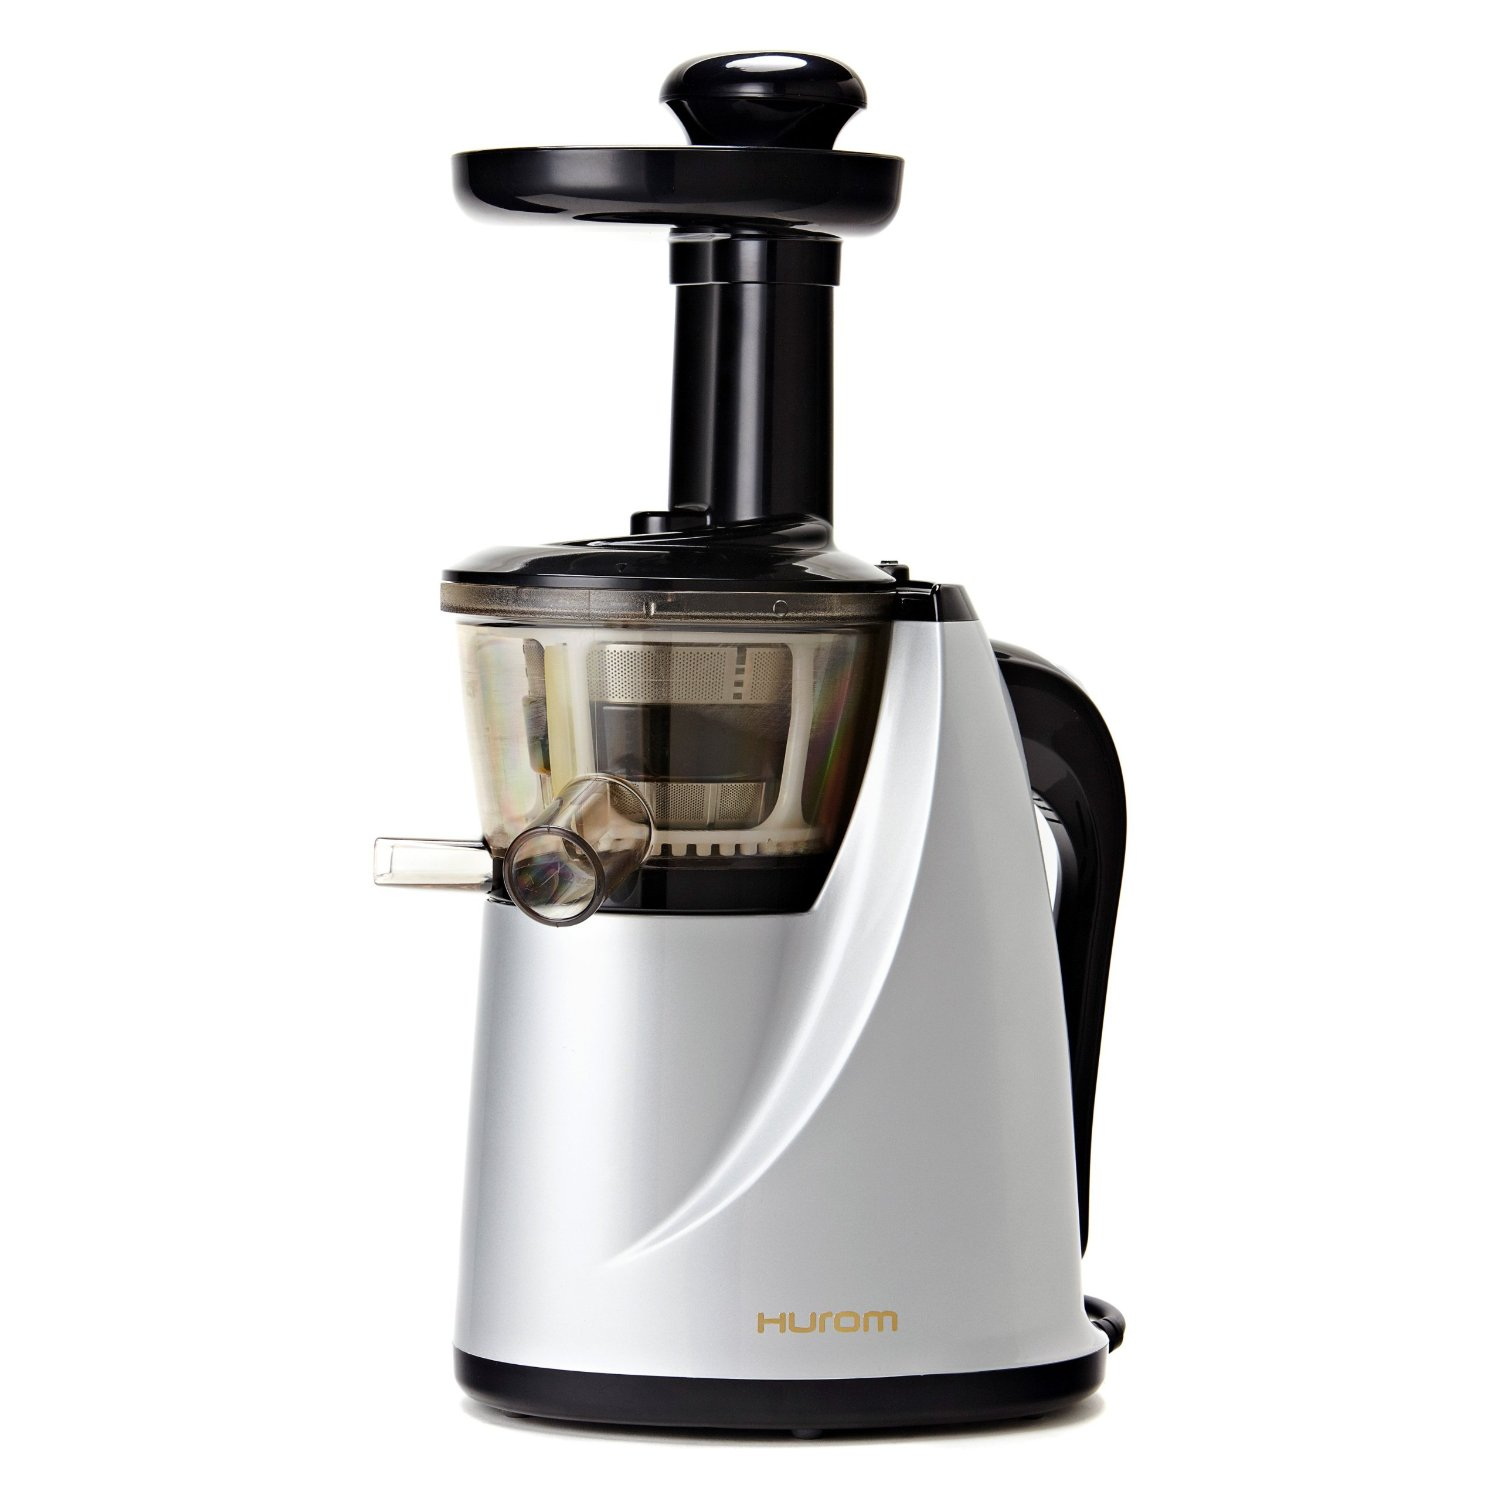 Hurom Slow Juicer Tilbud : Hurom HU-100 Masticating Slow Juicer Review - Best Cold Press Juicers